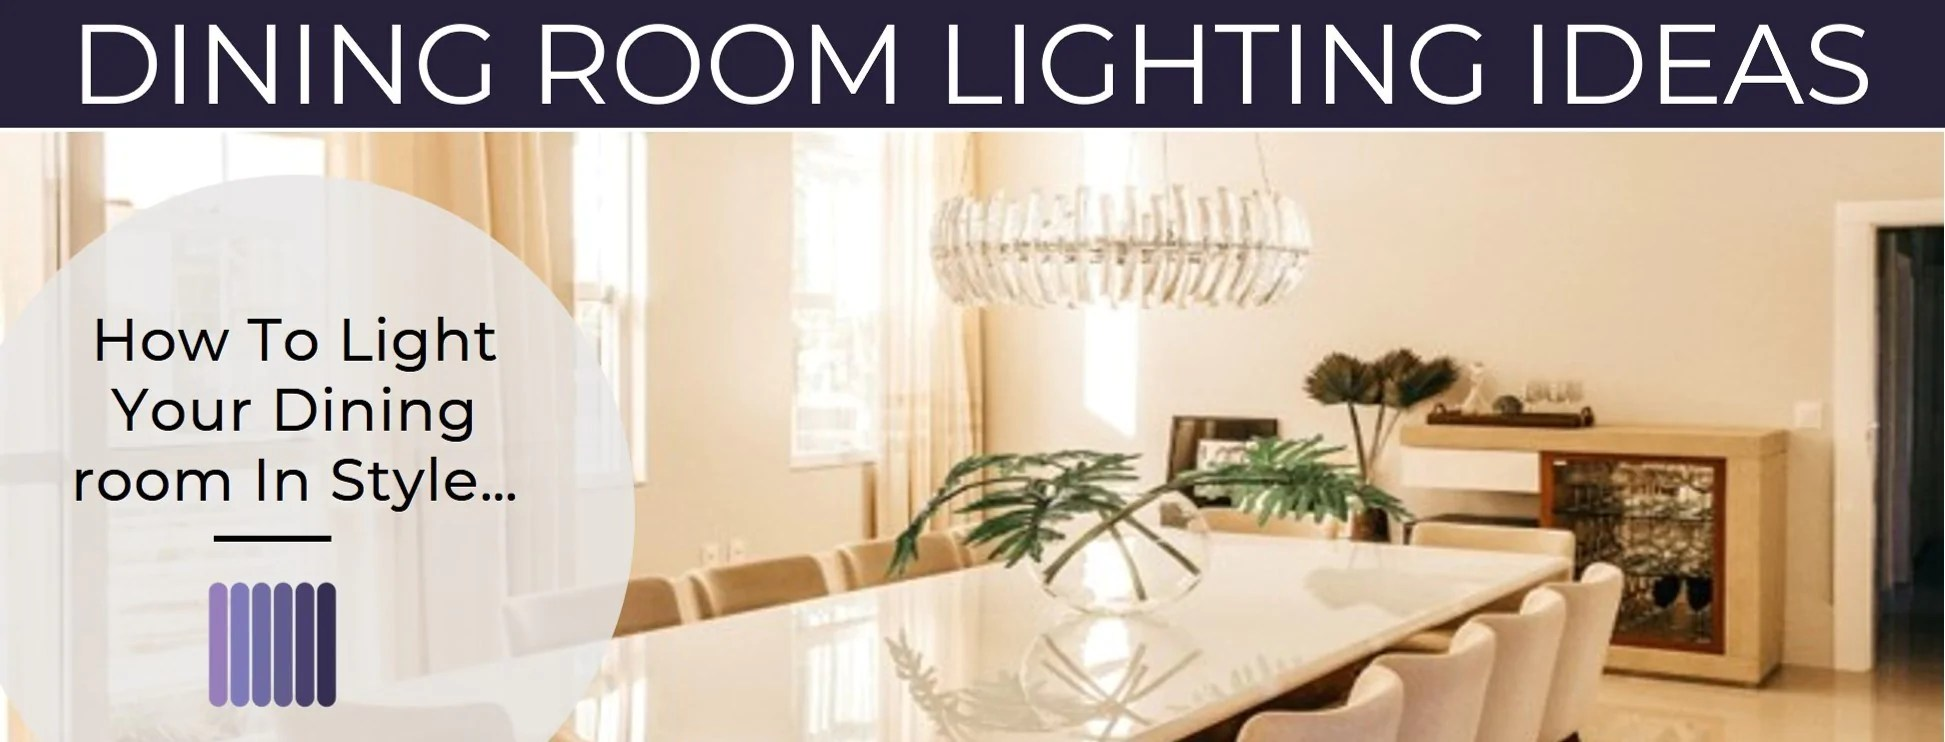 Dining Room Lighting Ideas Dine In Style With Our Lighting Tips